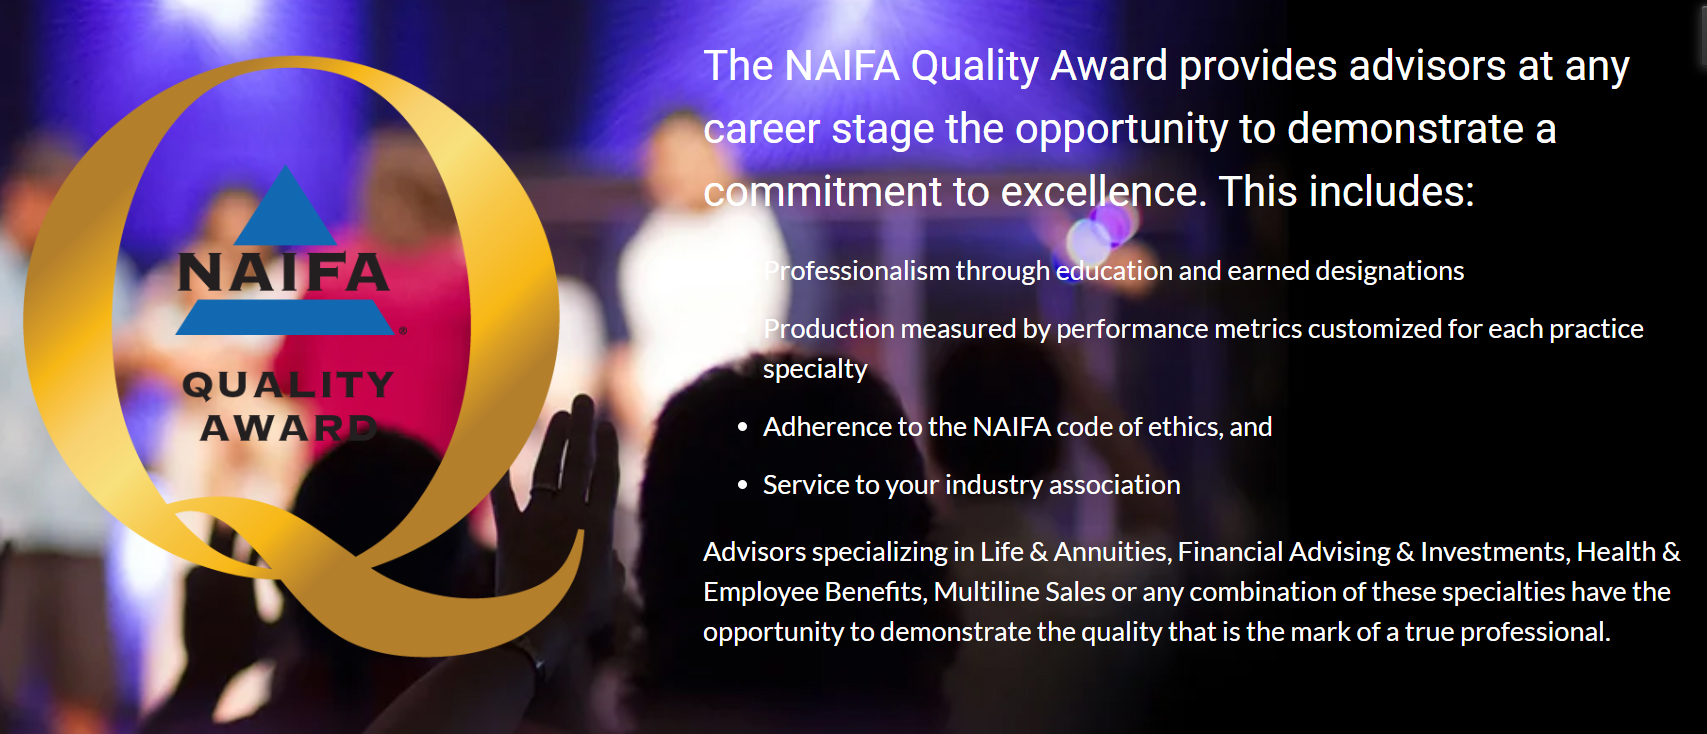 NAIFA Quality Awards